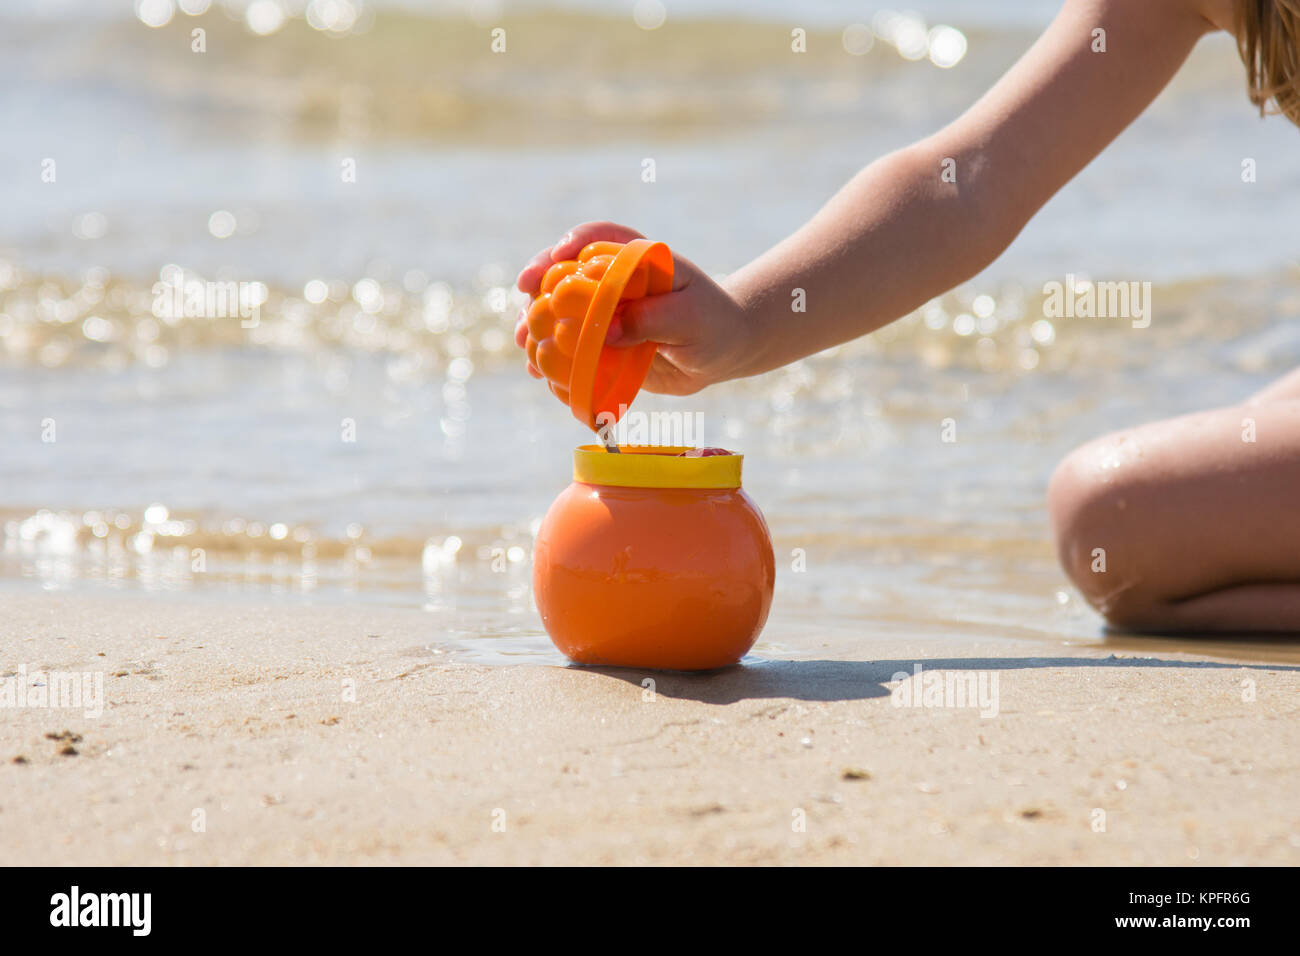 Child sprinkles wet sand from the molds in a pot on the sandy beach seashore - Stock Image